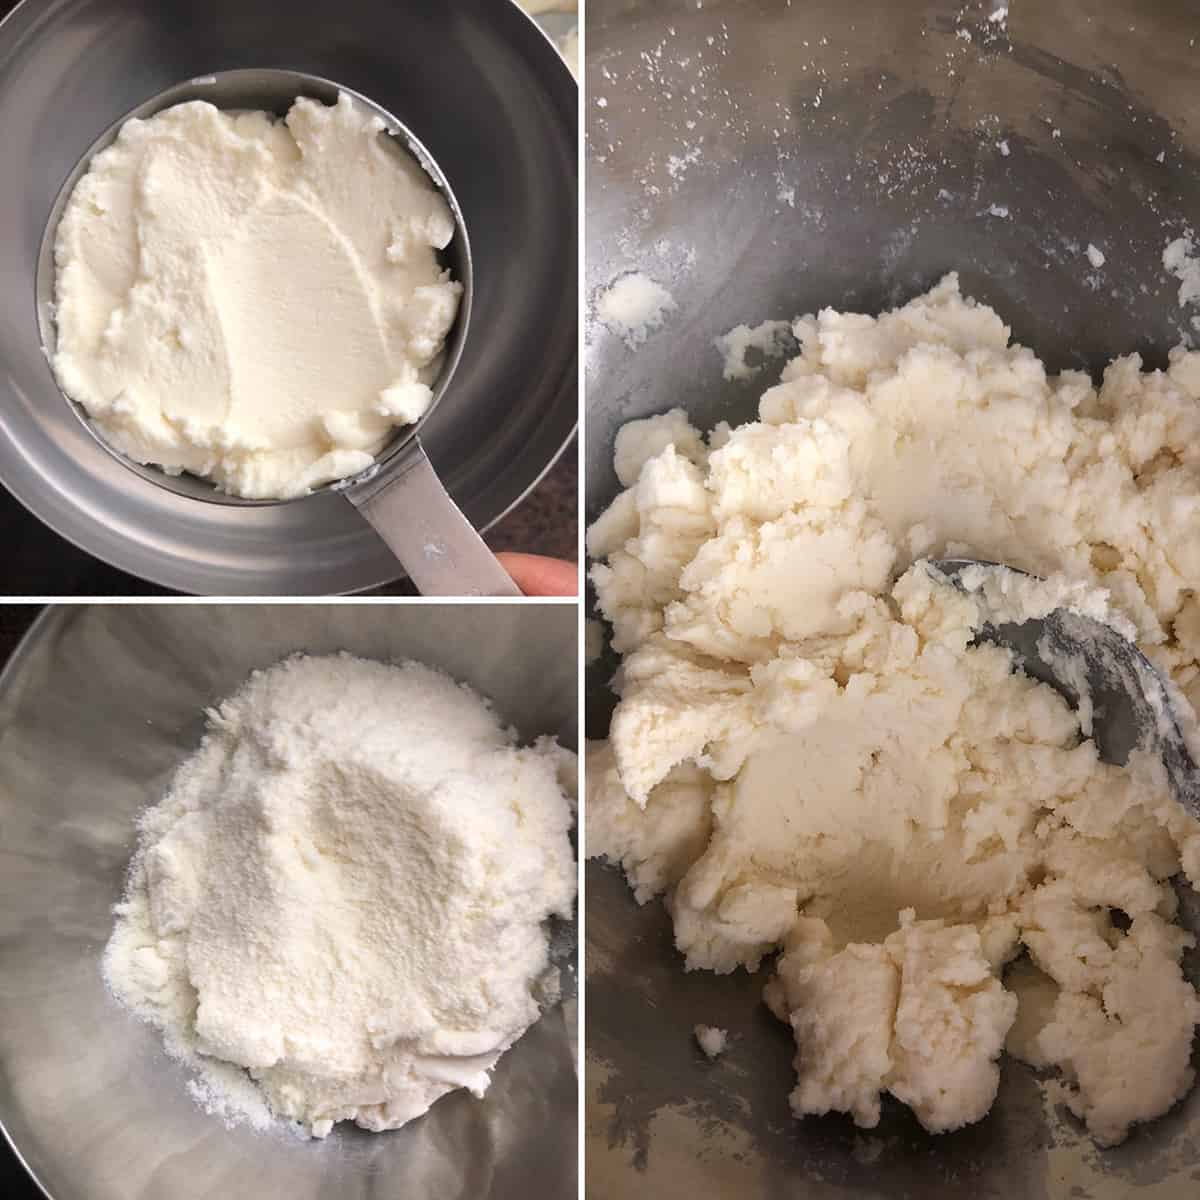 Combining ricotta cheese and dry milk powder in a steel bowl